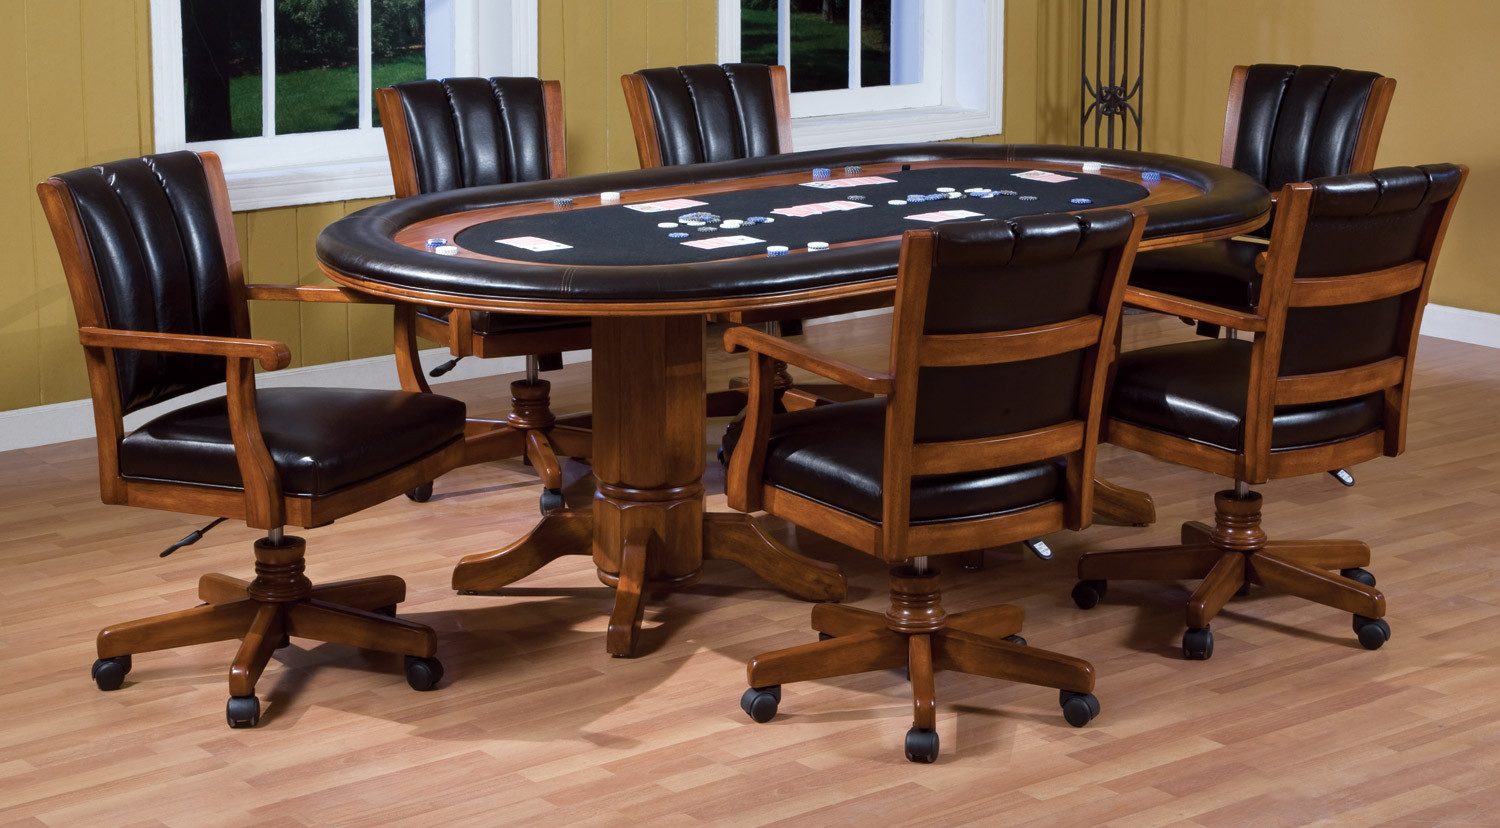 Best ideas about Game Room Tables . Save or Pin Designing a Game Room for your Family Gaming Space Now.